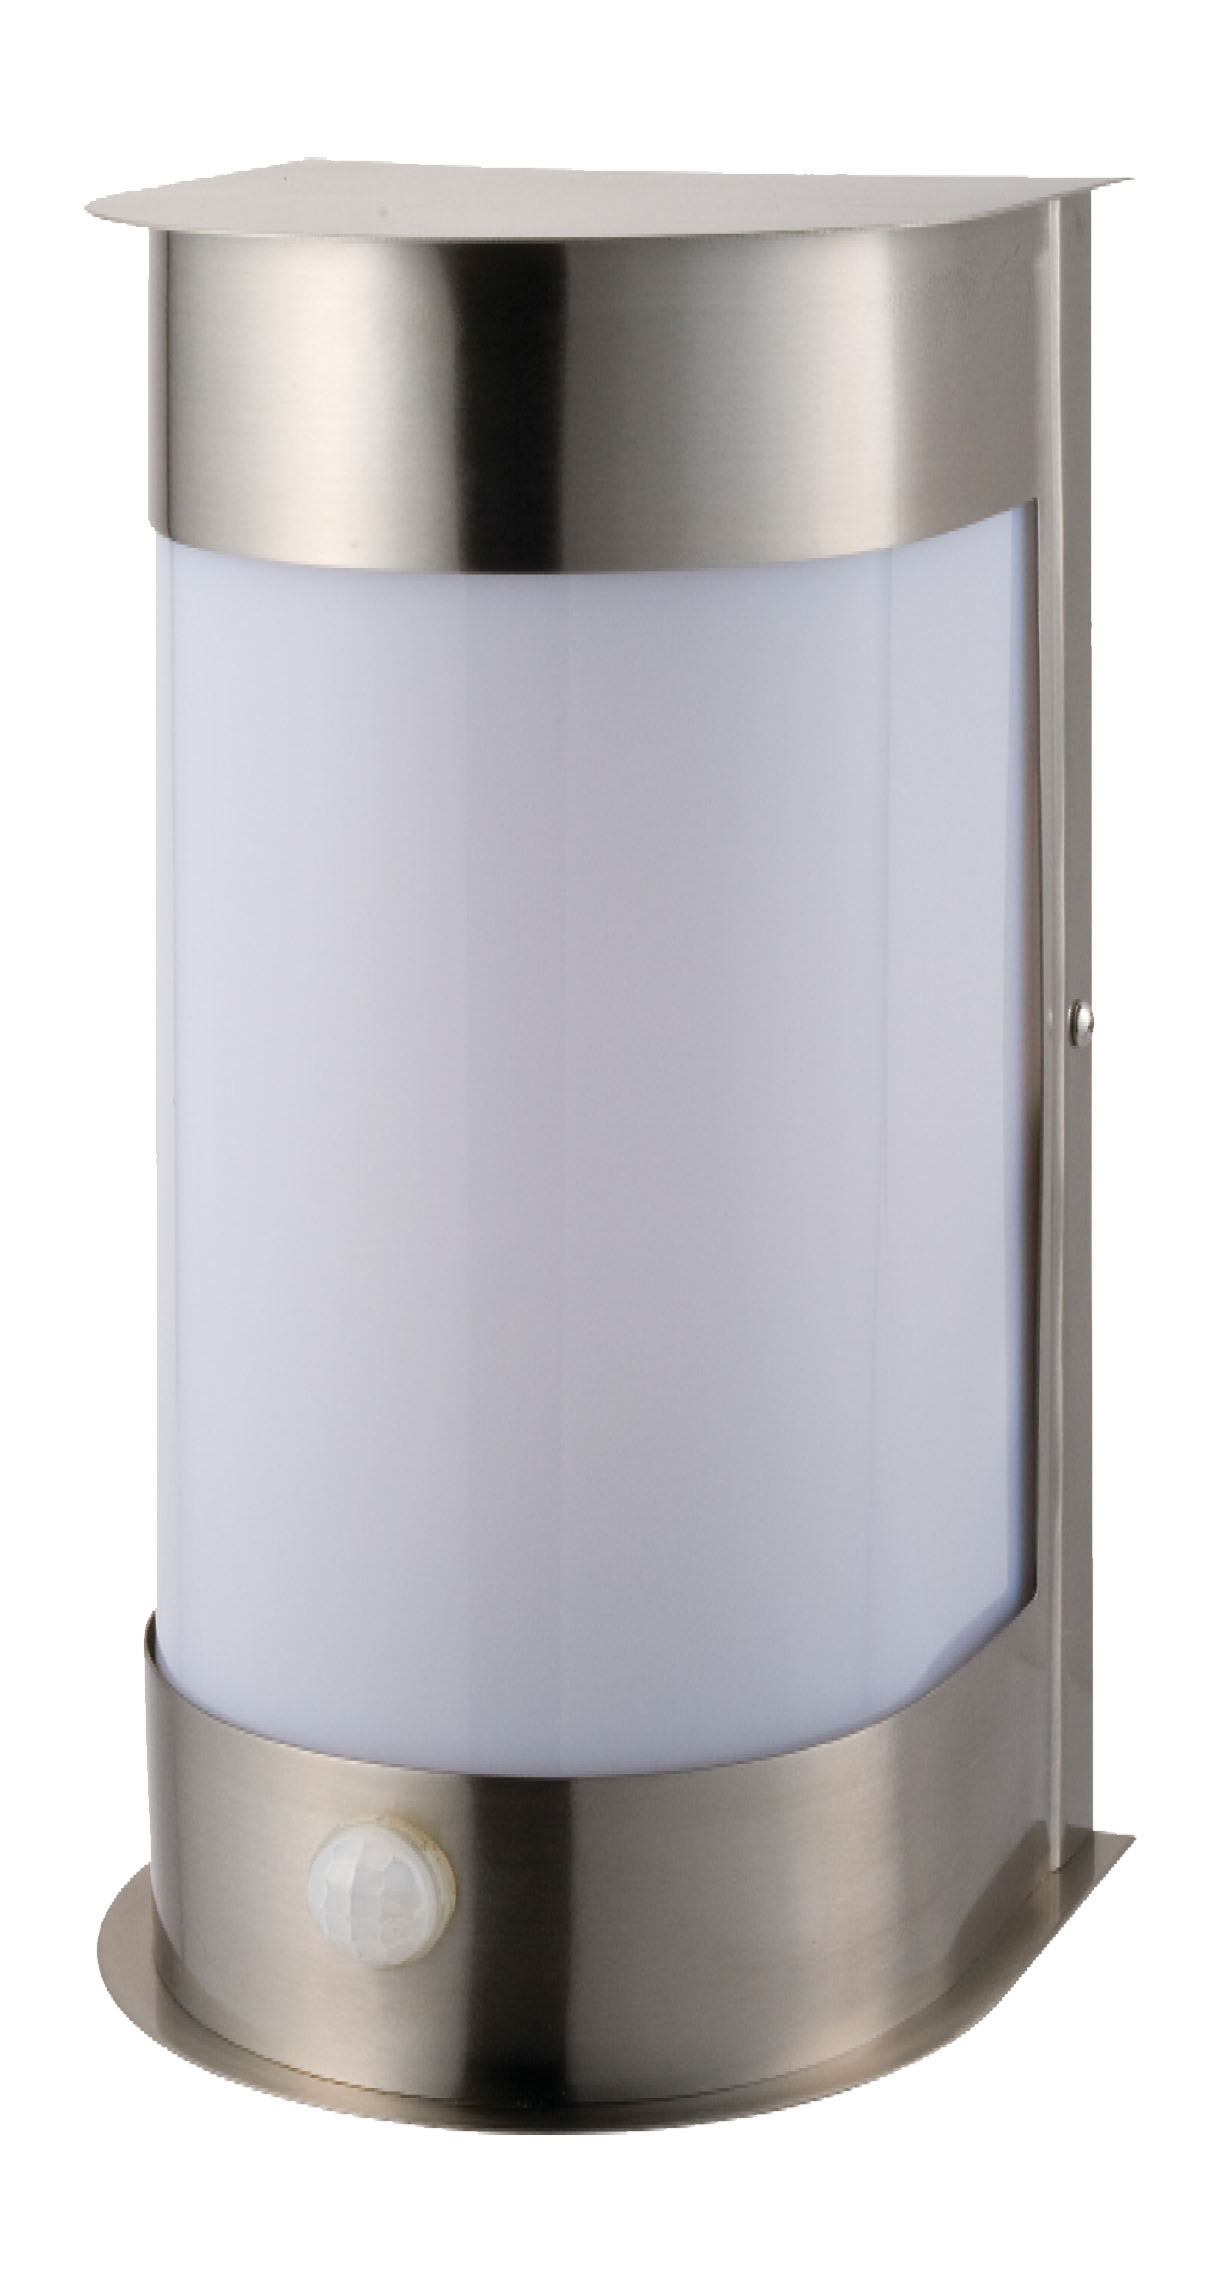 TP24 5330 Metro Maine 6W G40 LED IP44 Outdoor Security Light PIR Stainless  Steel